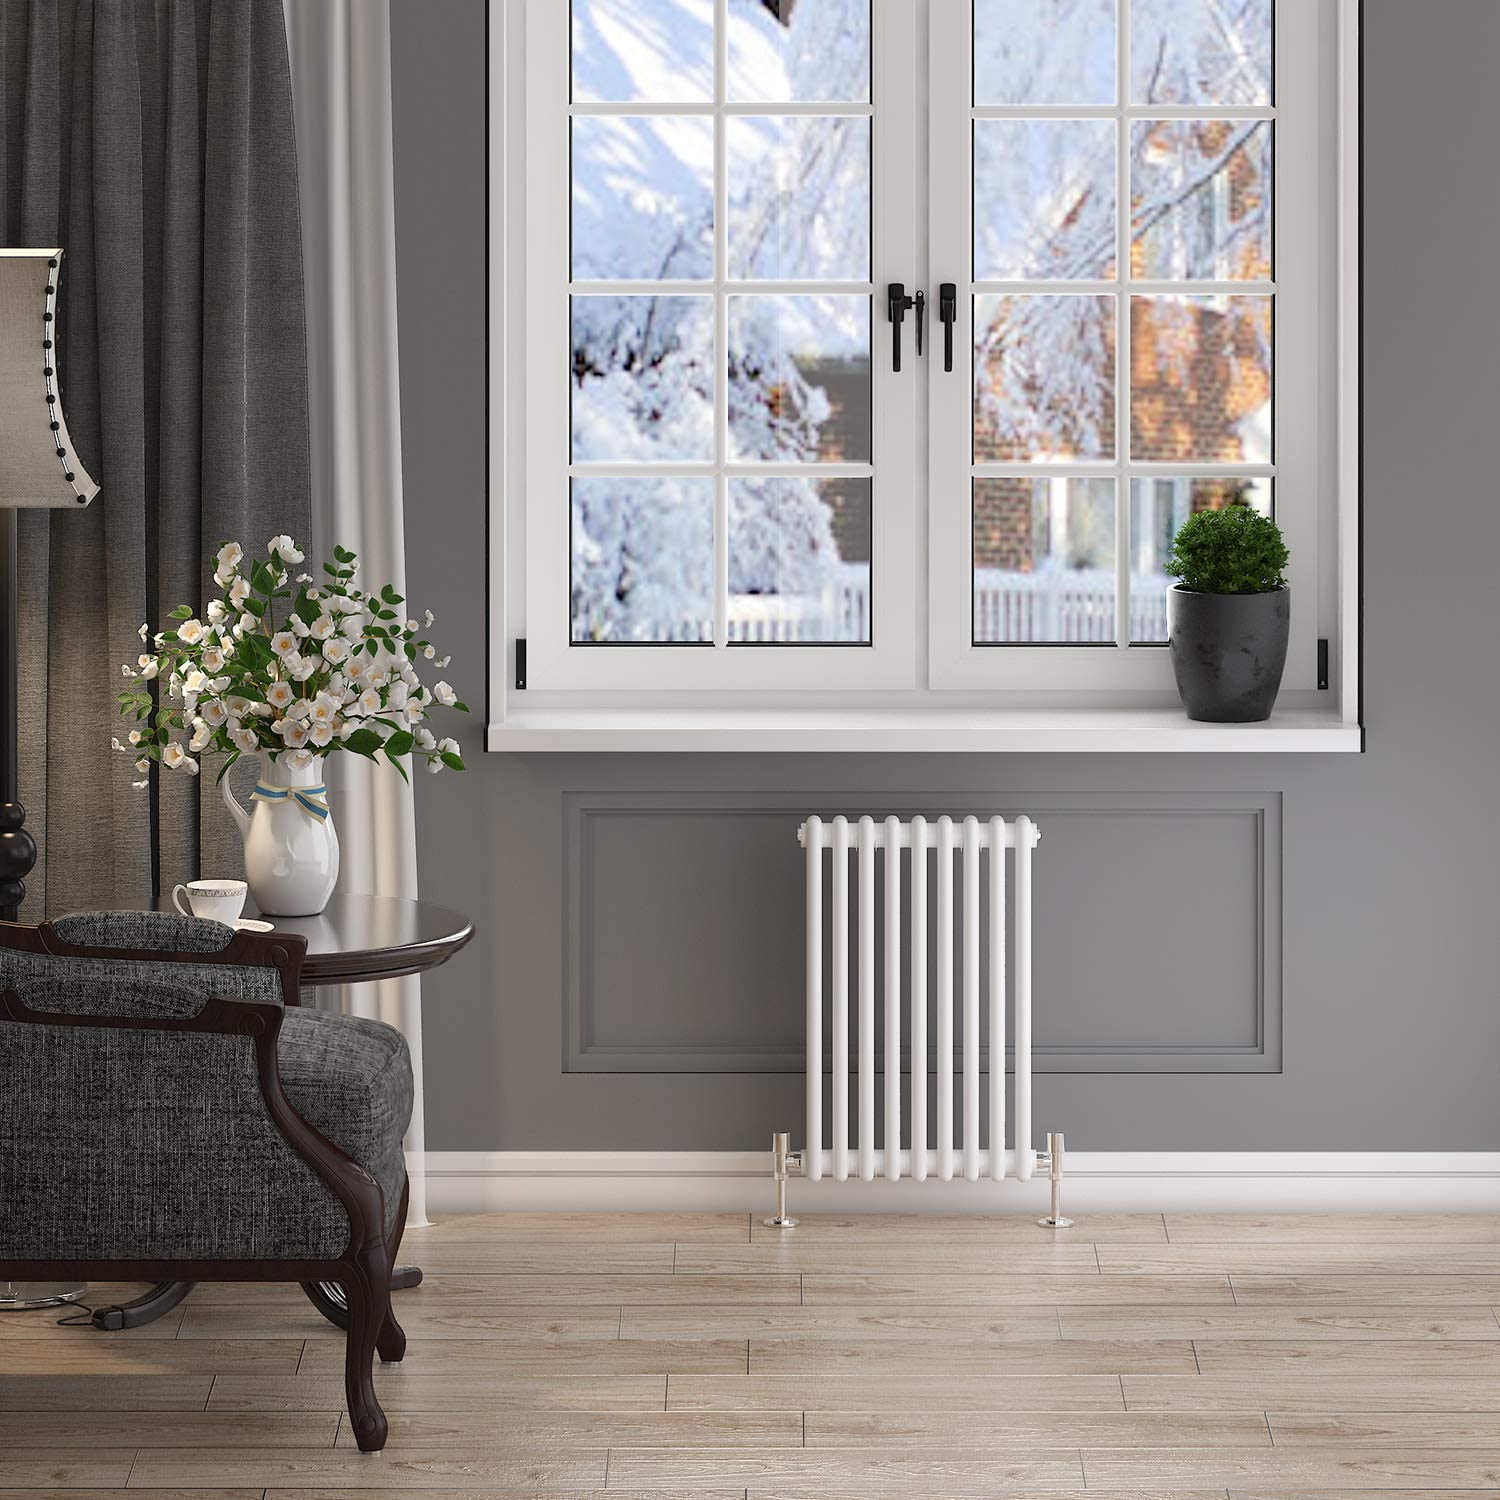 Best Traditional Radiators Classic Models To Keep Your Home Snug And Warm Homebuilding